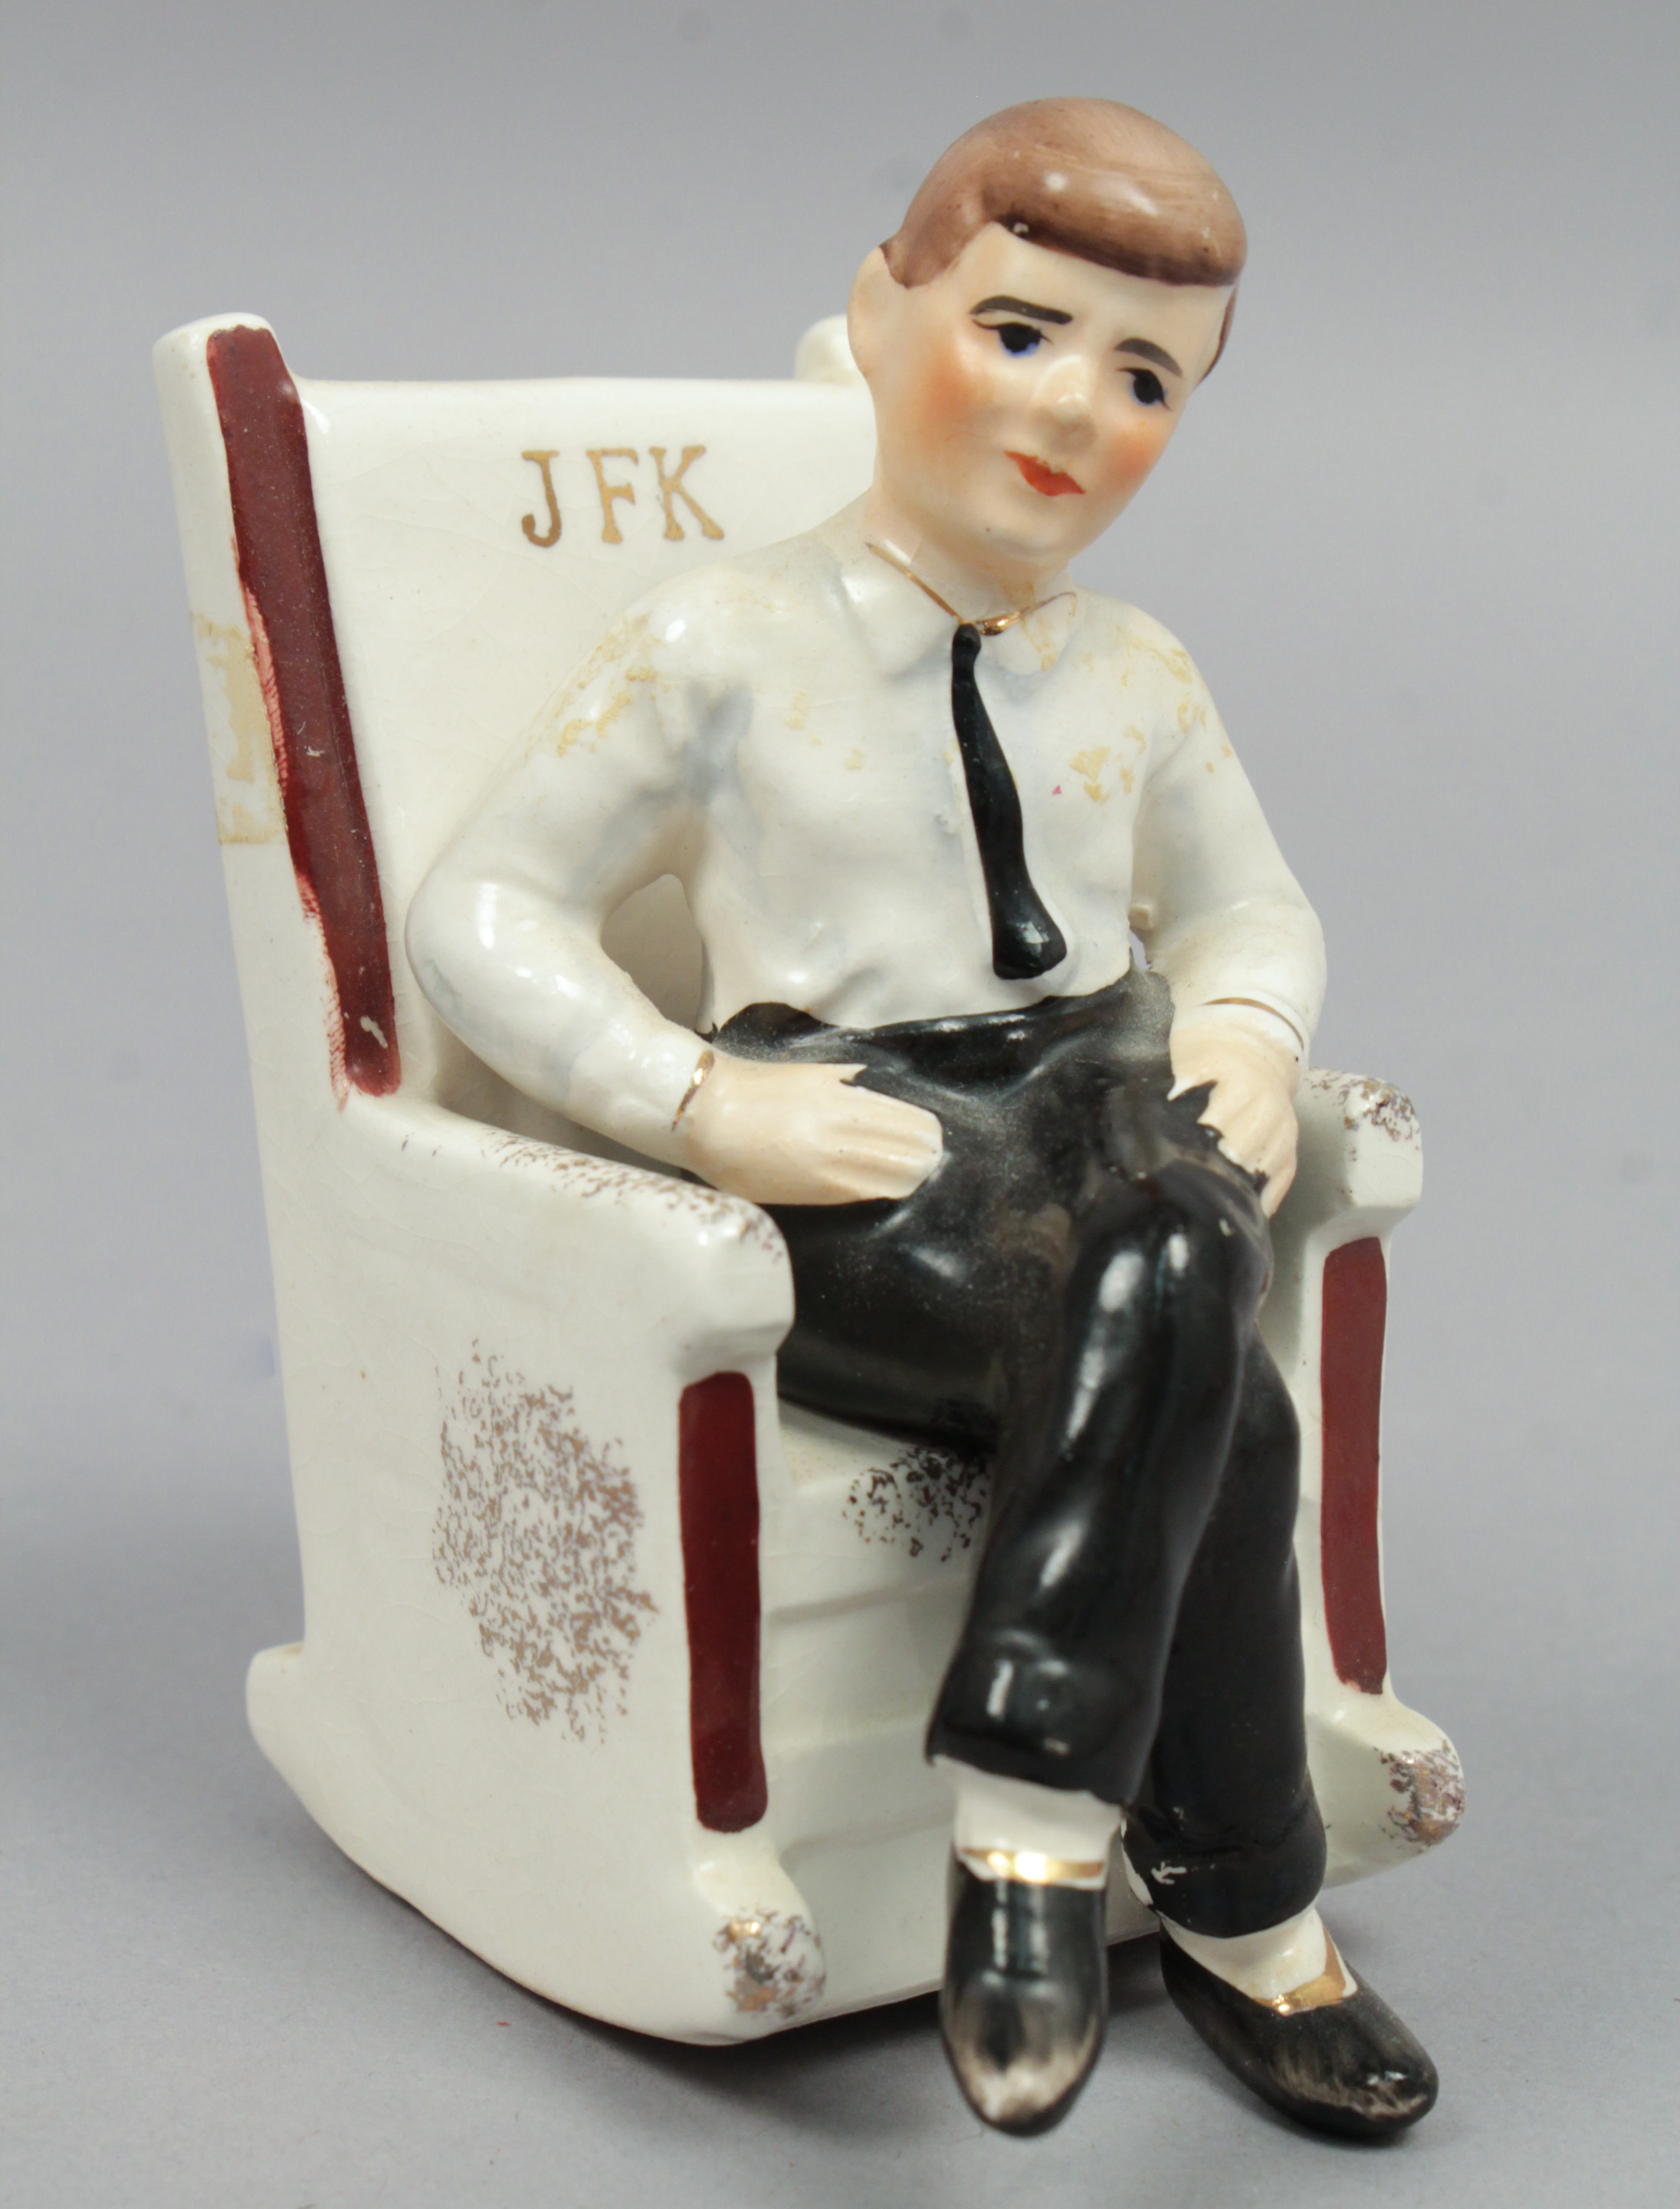 jfk rocking chair ikea dining covers vintage 1962 japanese president kennedy in